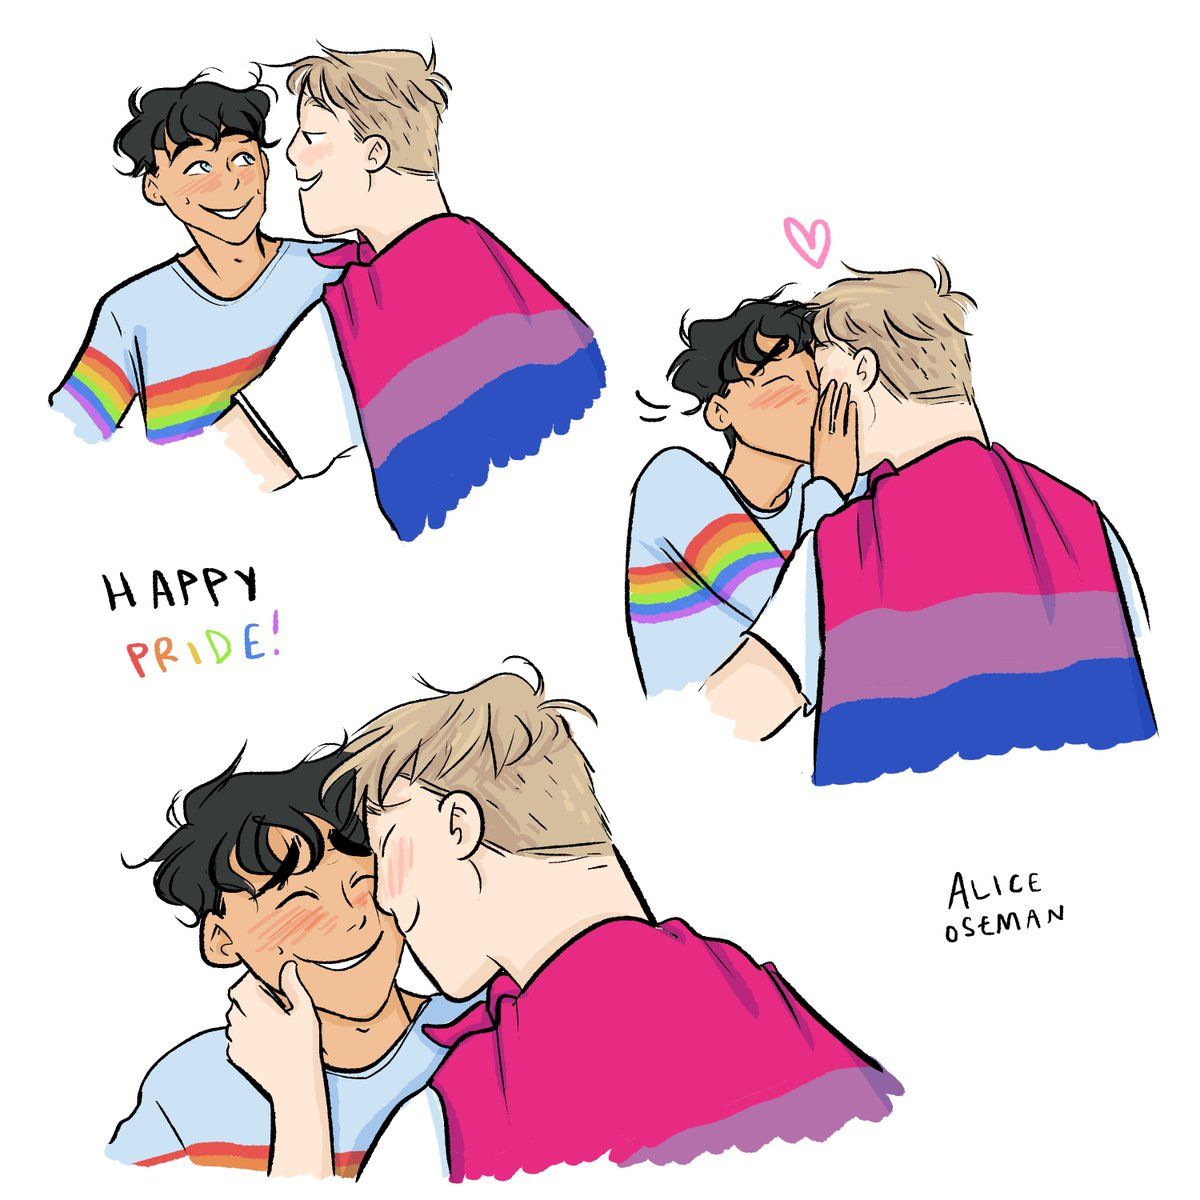 happy pride month from me & the heartstopper boys ❤️🧡💛💚💙💜 (wish id had the time/energy to draw more pride art this month but here is one at least!!)